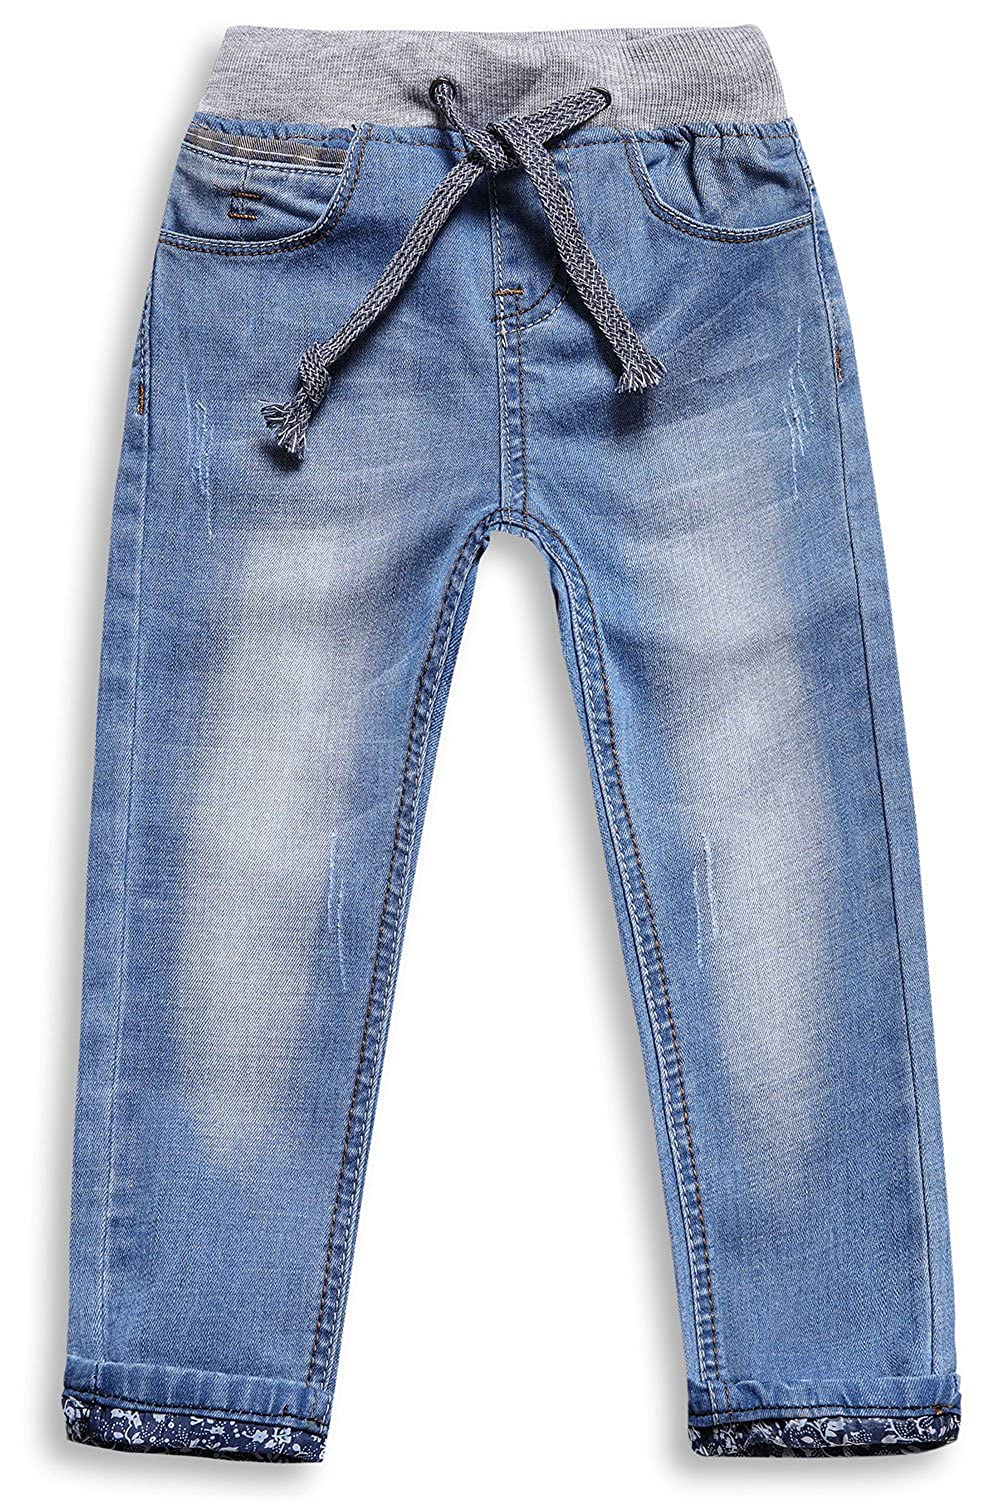 1b73b746632 LITTLE-GUEST Children s Place Straight Fit Jeans Toddler Boys Denim Pull On  Drawstring Waistband Pants B117